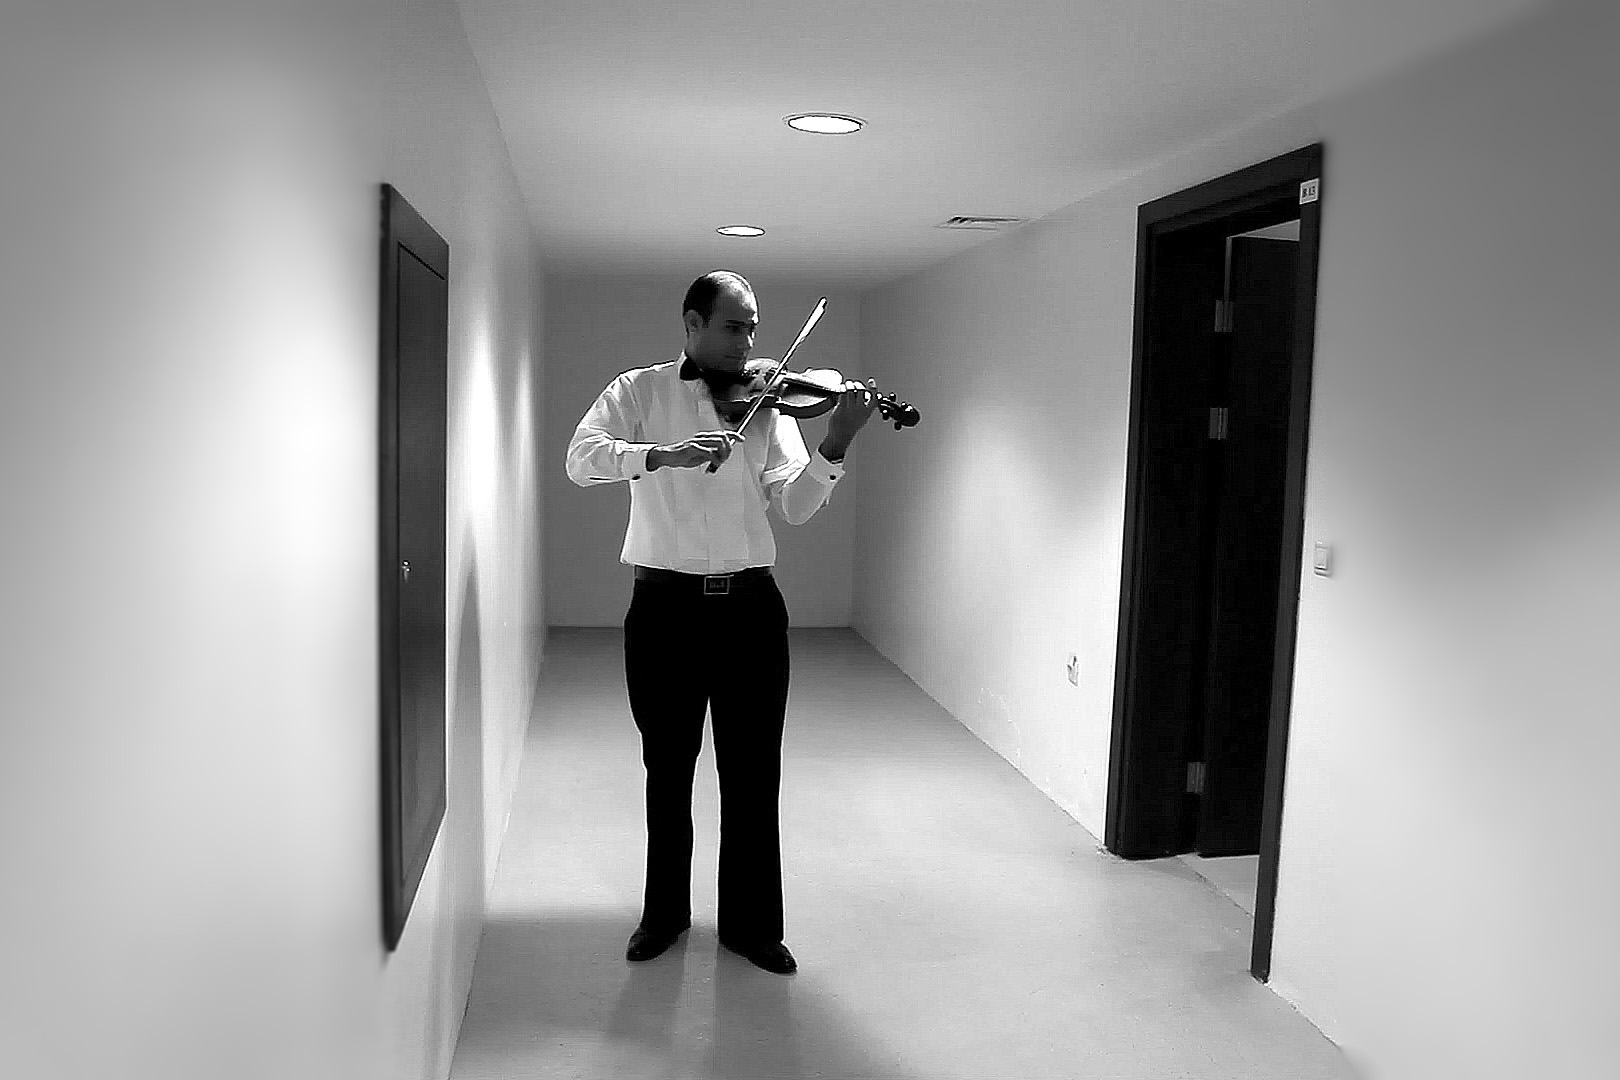 15 September, 2012 - Erbil, Iraqi Kurdistan   First Chair violinist Saad Al-Saedi warming up in the corridors of Saad Abdullah Palace Conference Centre prior to performance